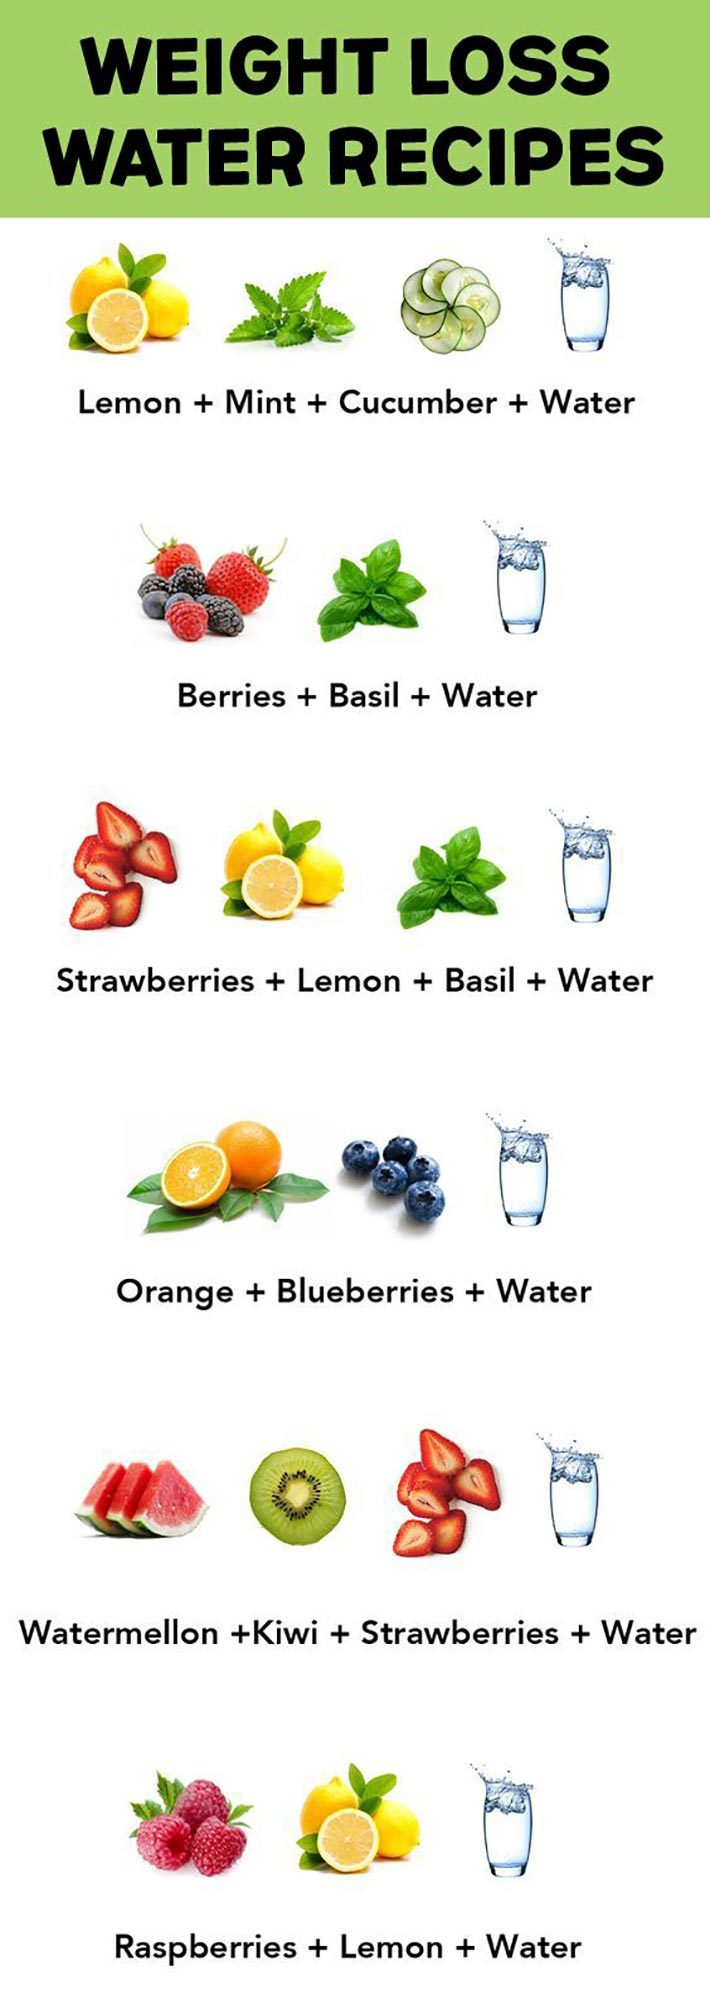 Fruit Water: Refreshing Summer Drinks For Detox And Weight Loss Infographic